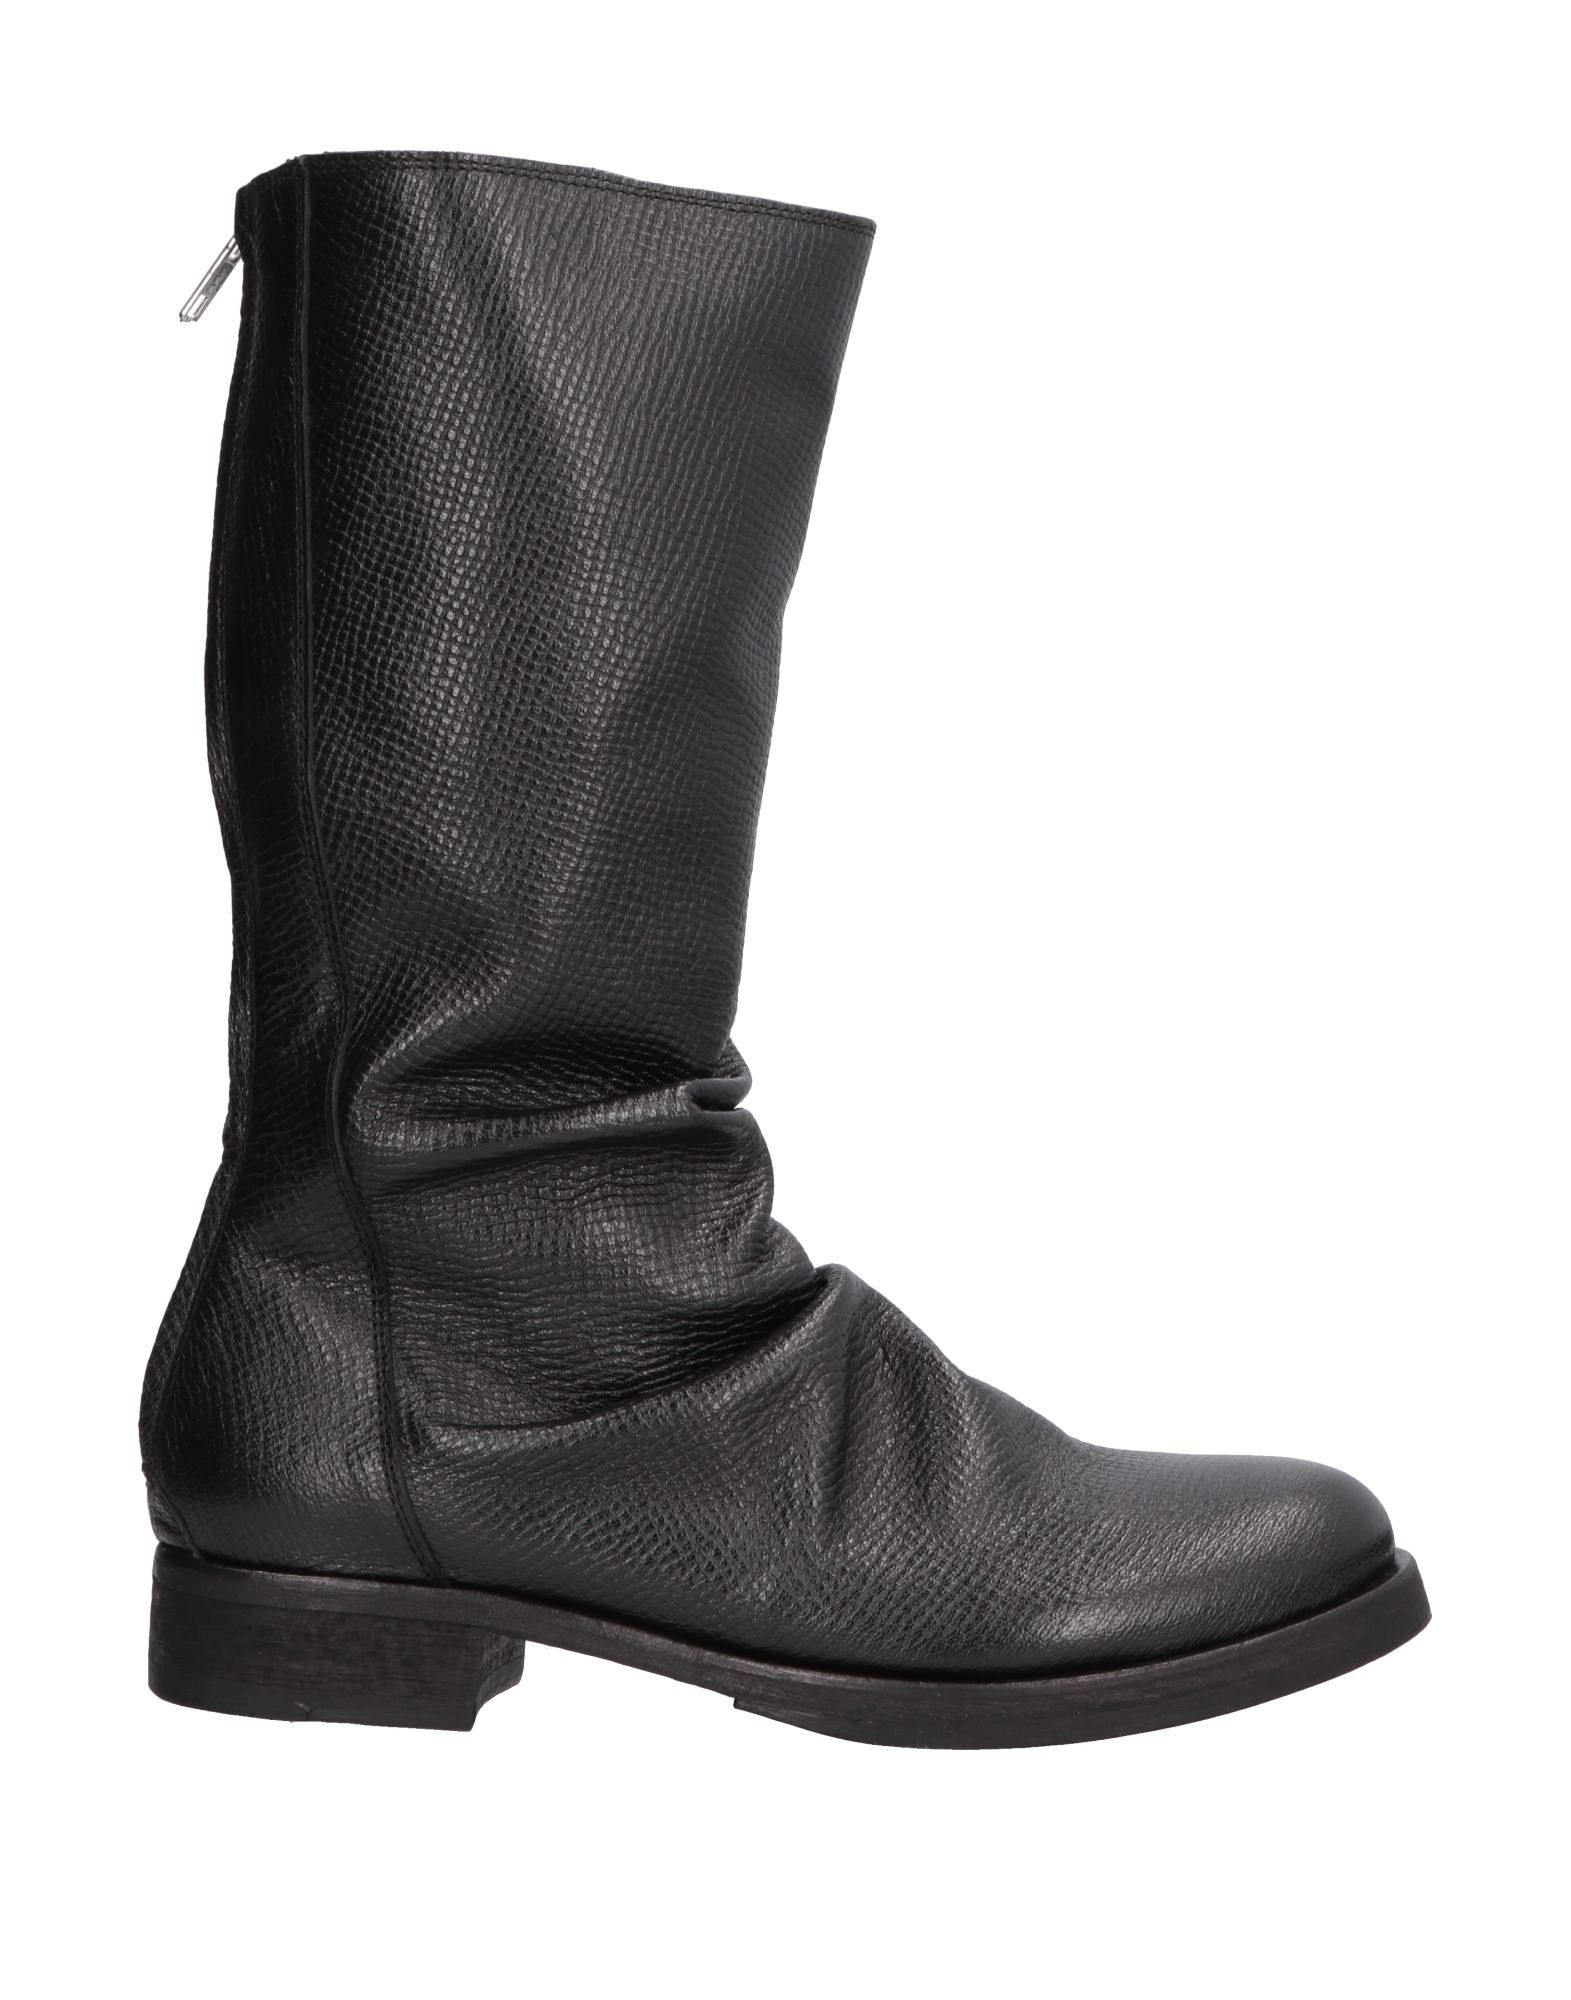 Open Closed  Shoes Boots - Women Open Closed   Shoes Boots online on   Australia - 11569477AT 77bb23